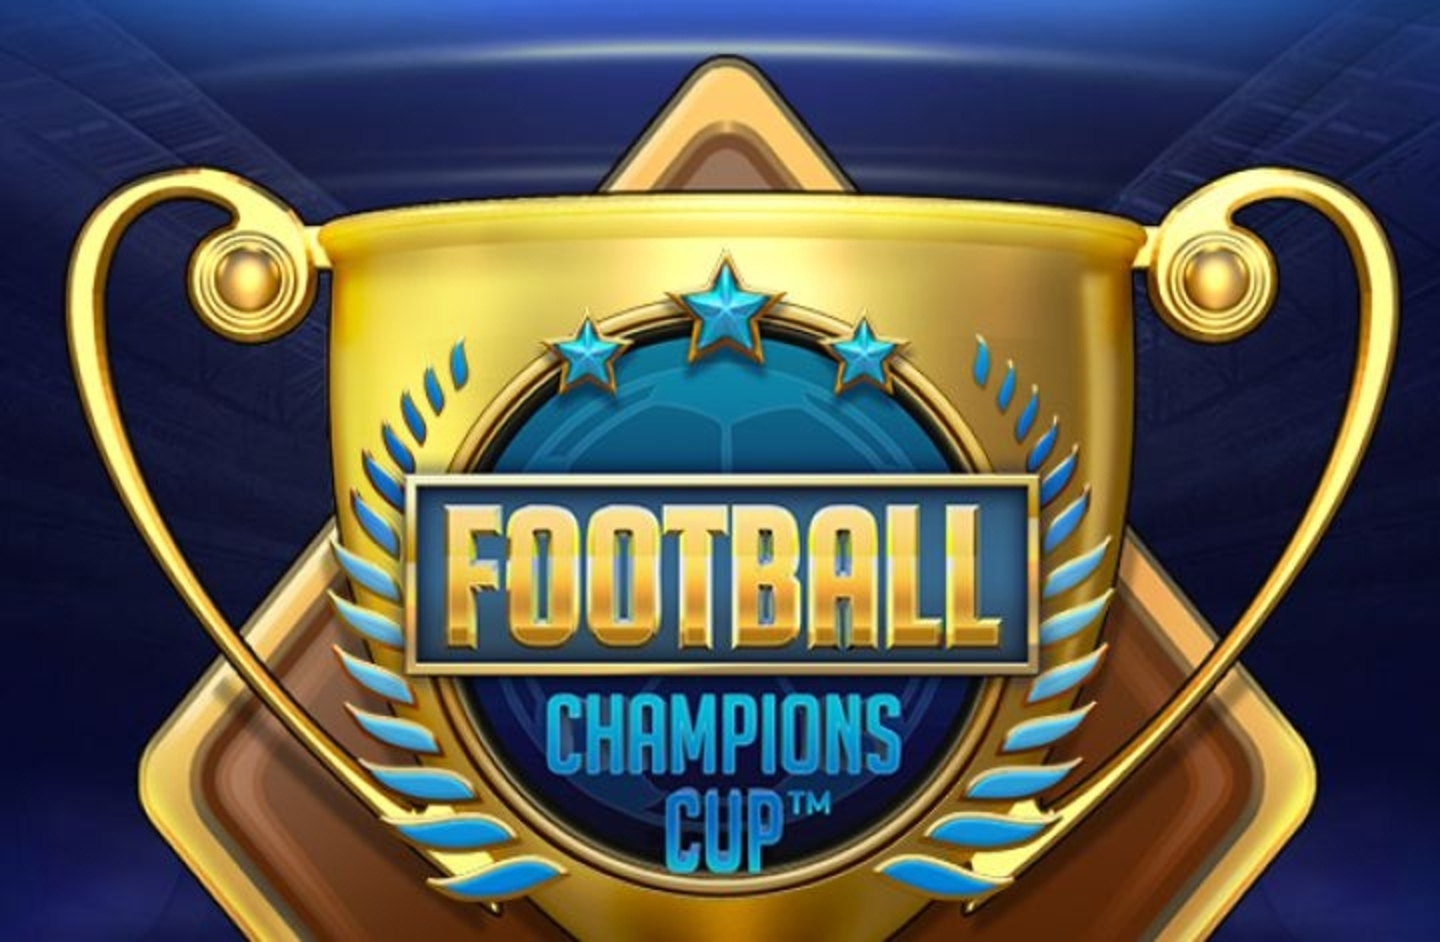 Se Football: Champions Cup Online Slot Demo Game, NetEnt